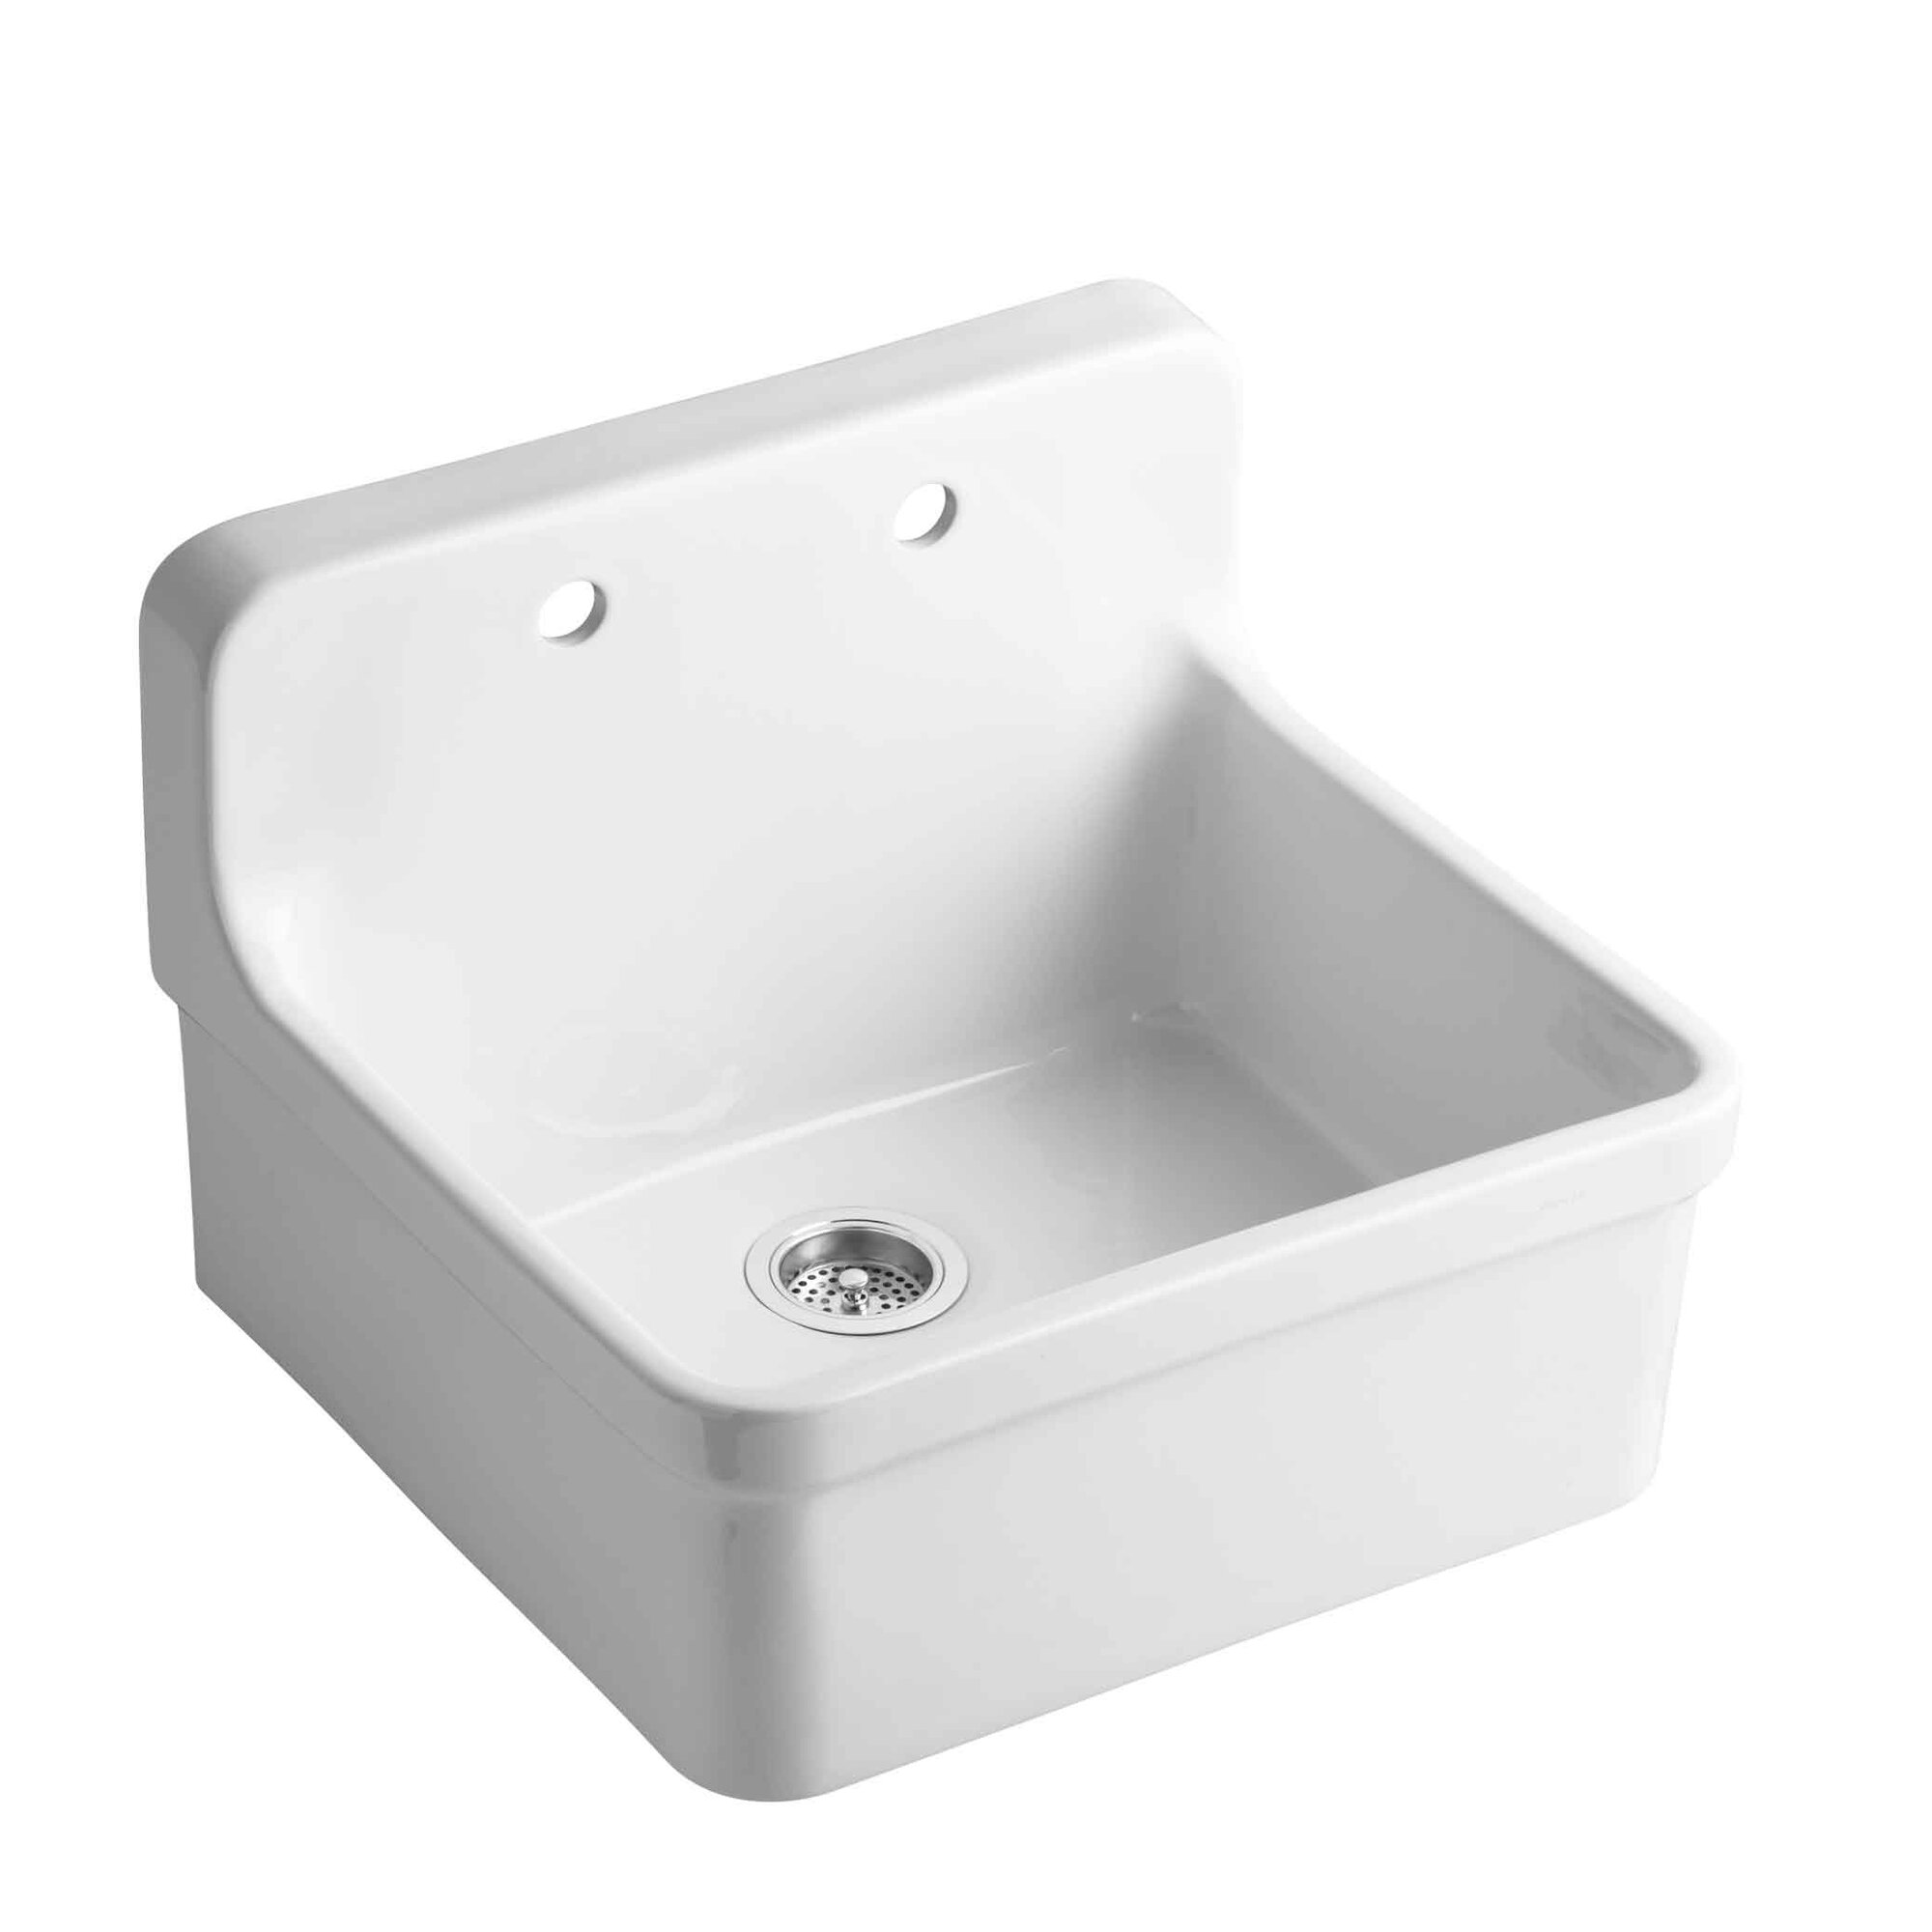 kohler gilford 24 x 22 x 9 12 wall mounttop mount single bowl kitchen sink reviews wayfair - White Single Basin Kitchen Sink